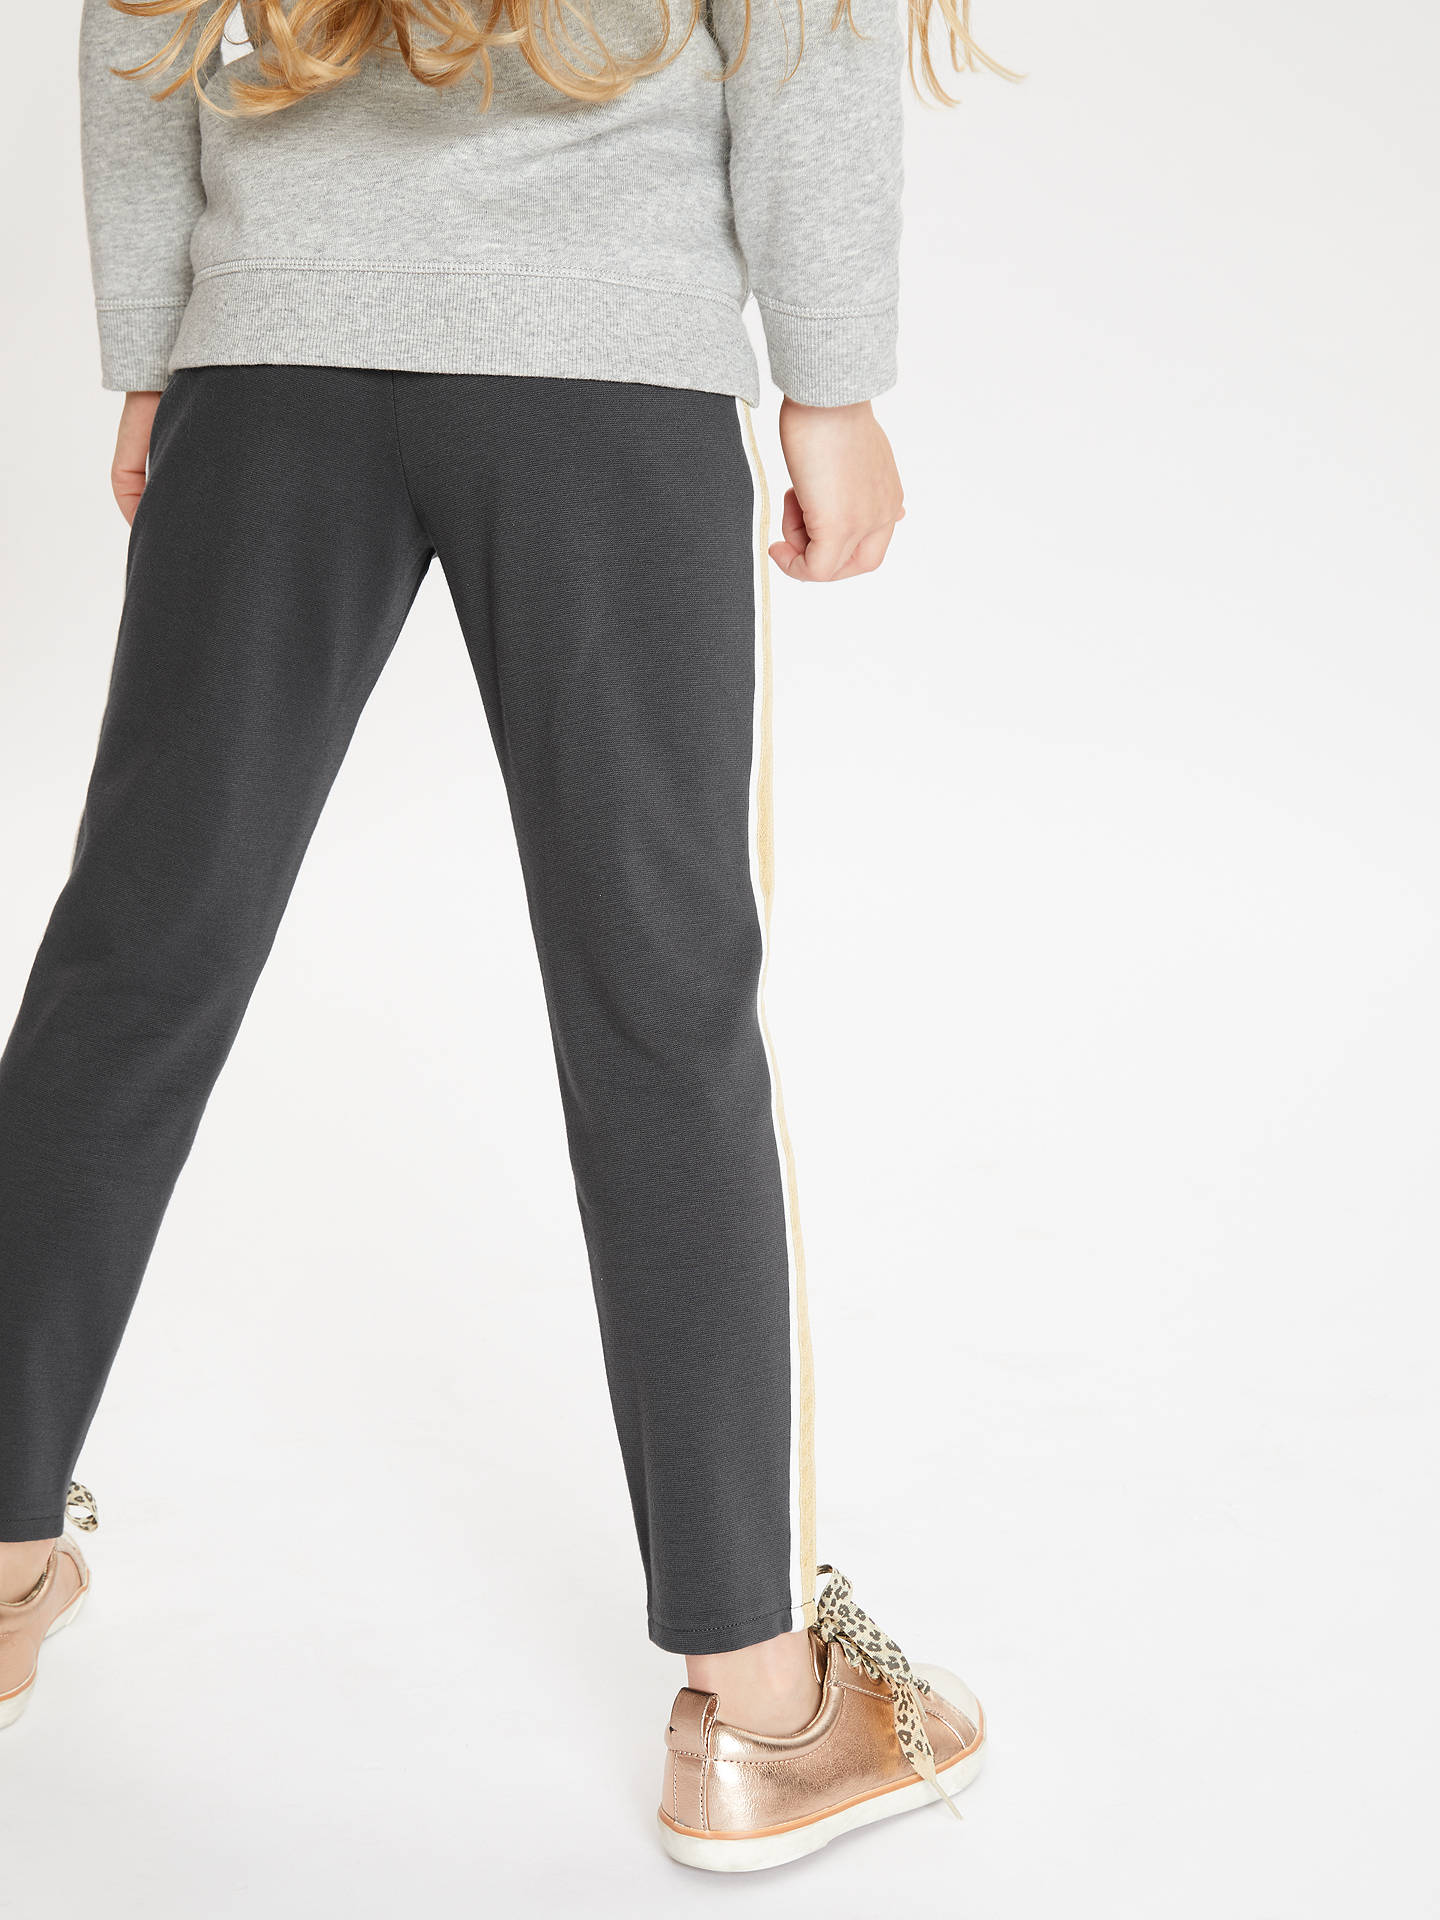 Buy John Lewis & Partners Girls' Side Stripe Print Leggings, Charcoal, 8 years Online at johnlewis.com